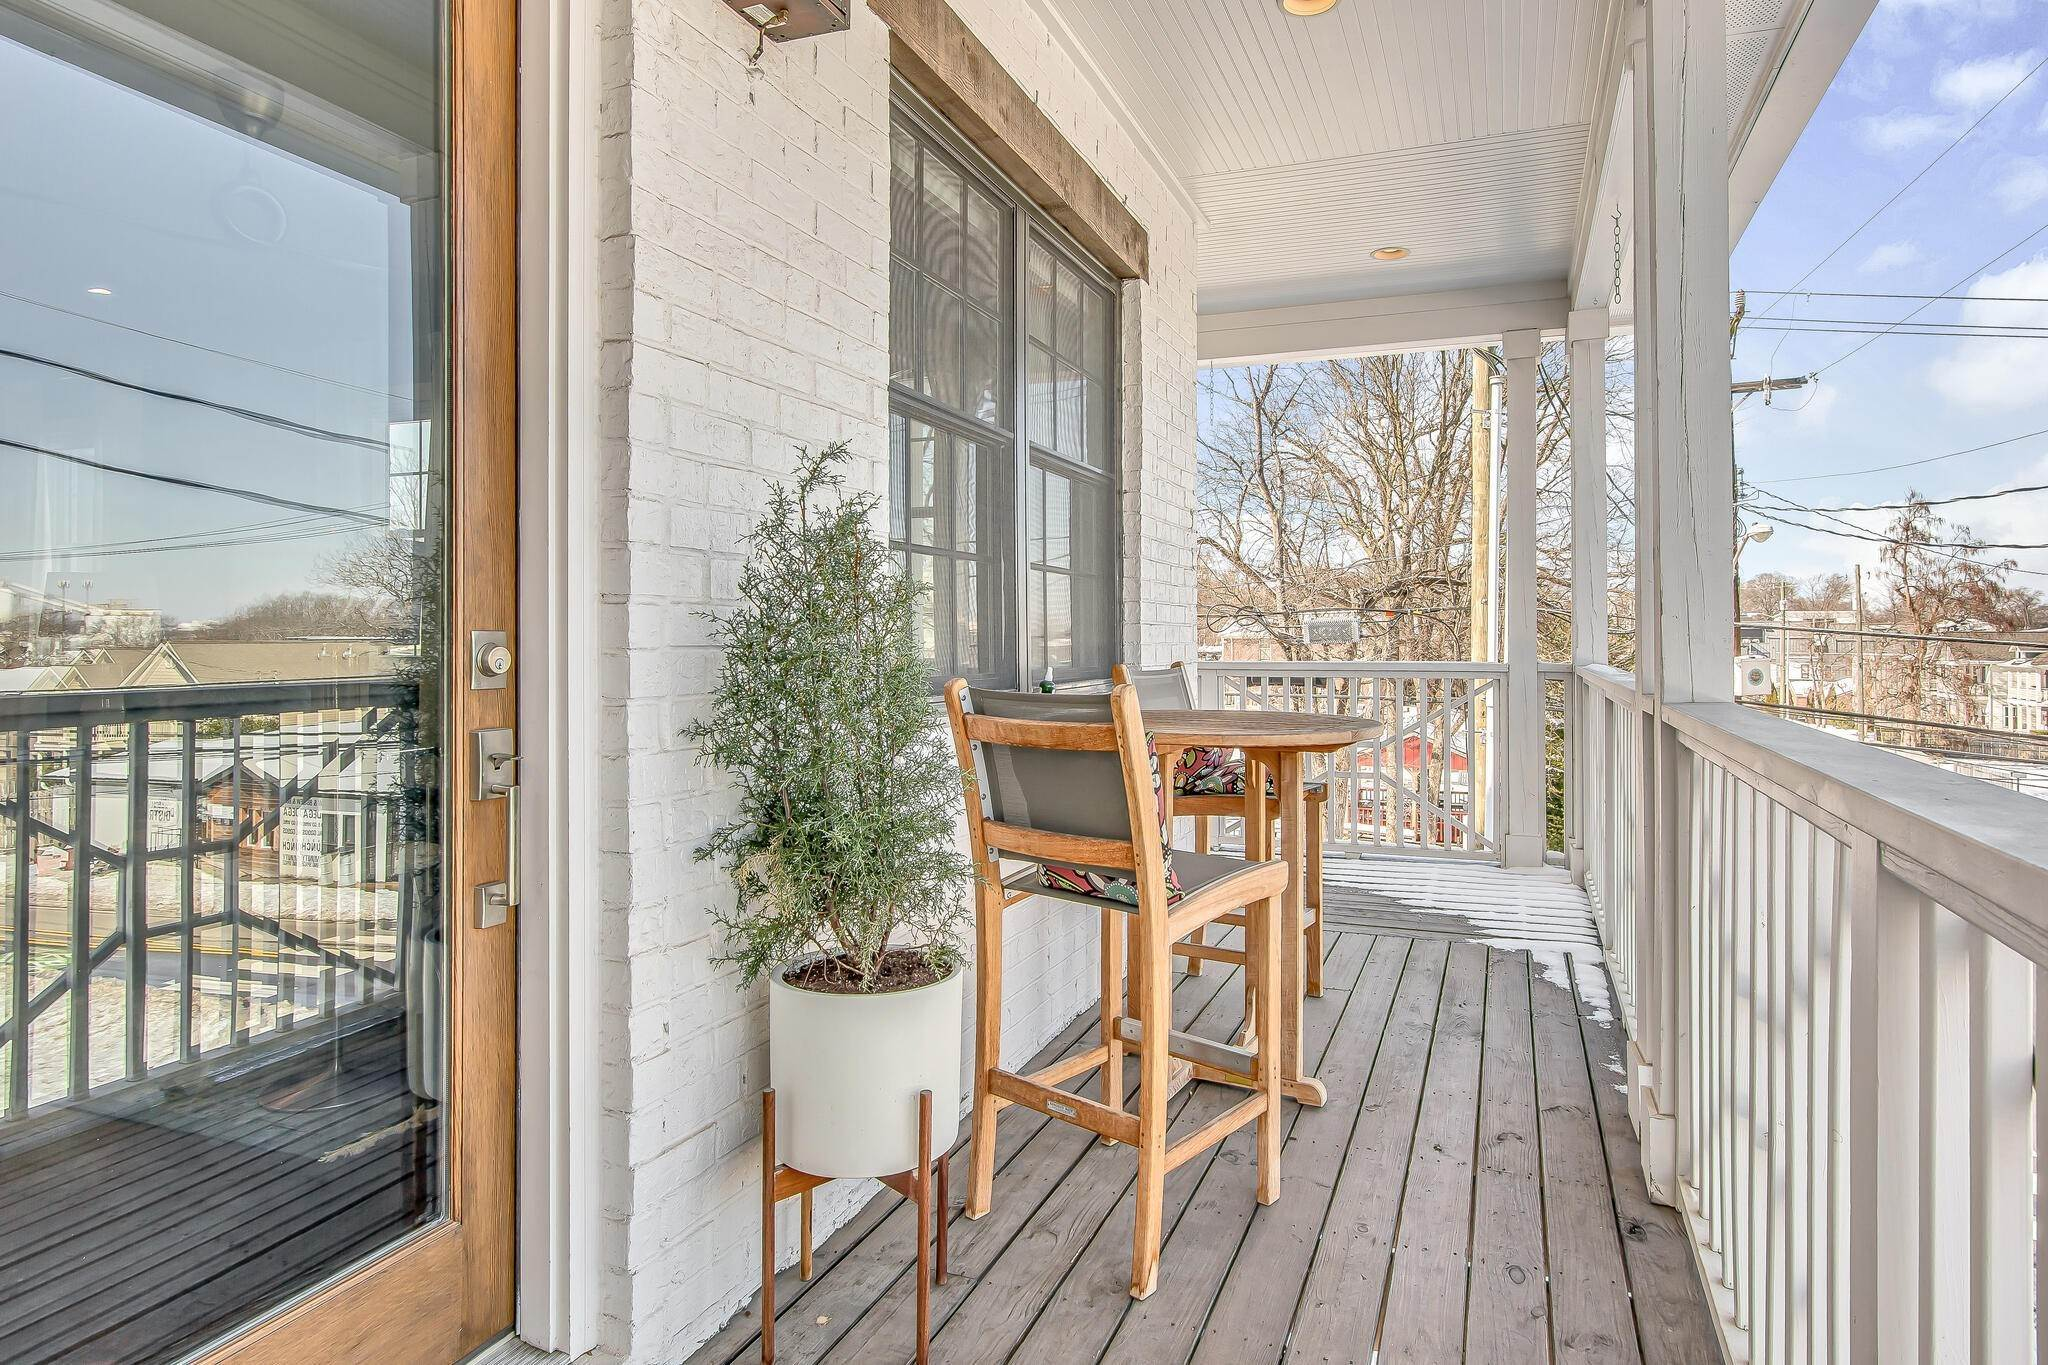 12. townhouses for Sale at 1629 7th Ave, N Nashville, Tennessee 37208 United States